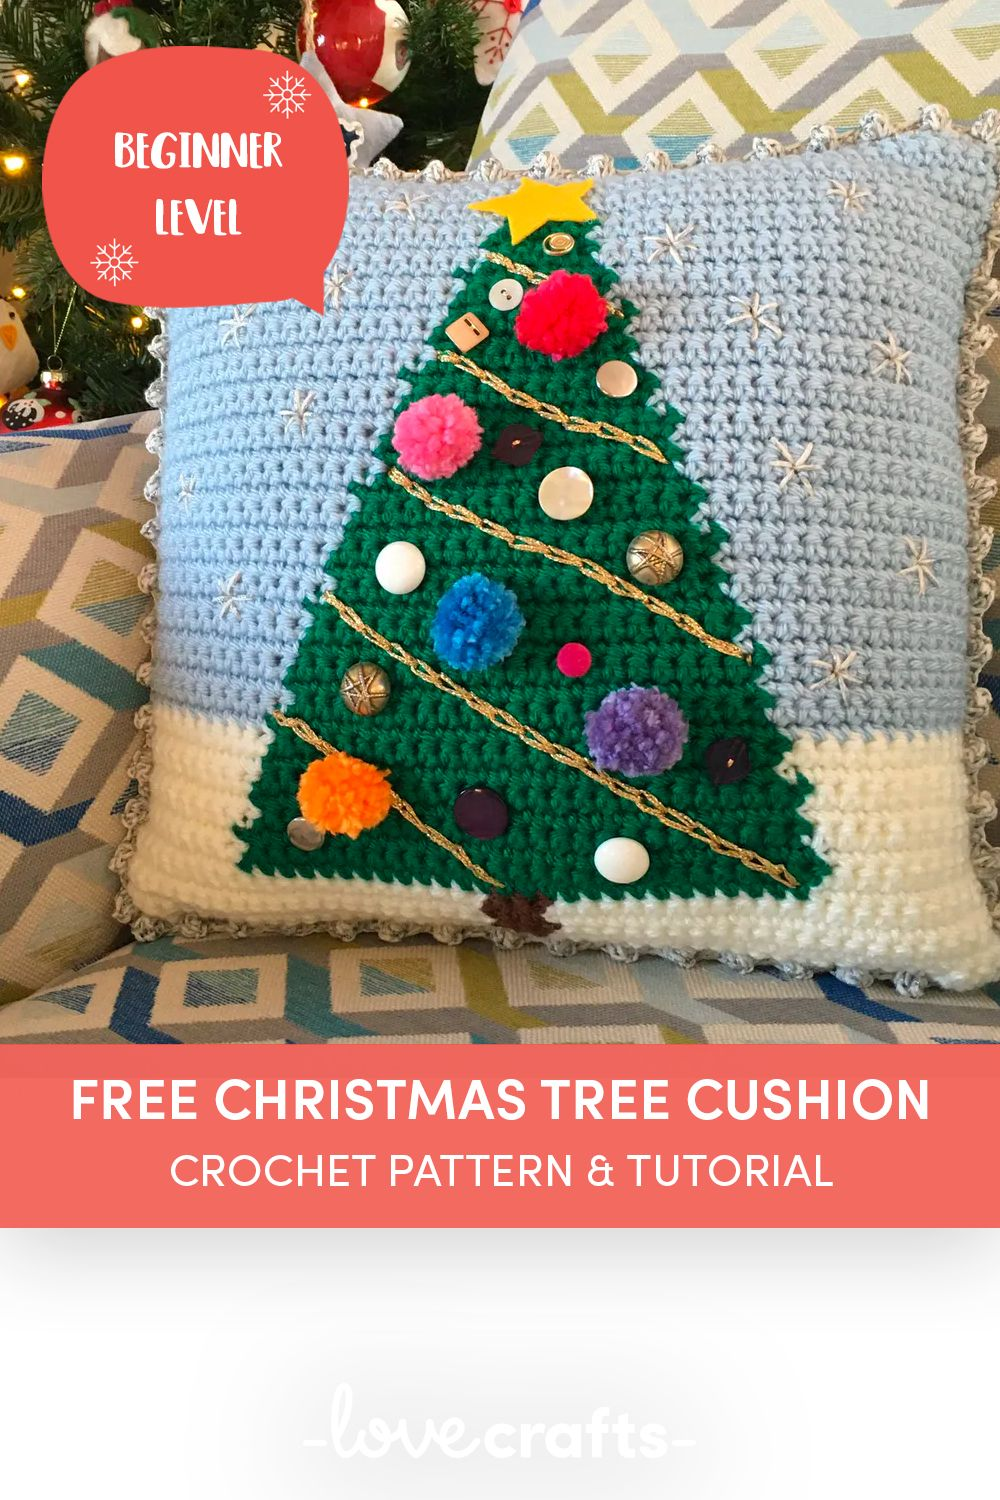 Crochet A Christmas Tree Cushion Lovecrafts In 2020 Crochet Coaster Pattern Crochet Christmas Trees Christmas Crafts